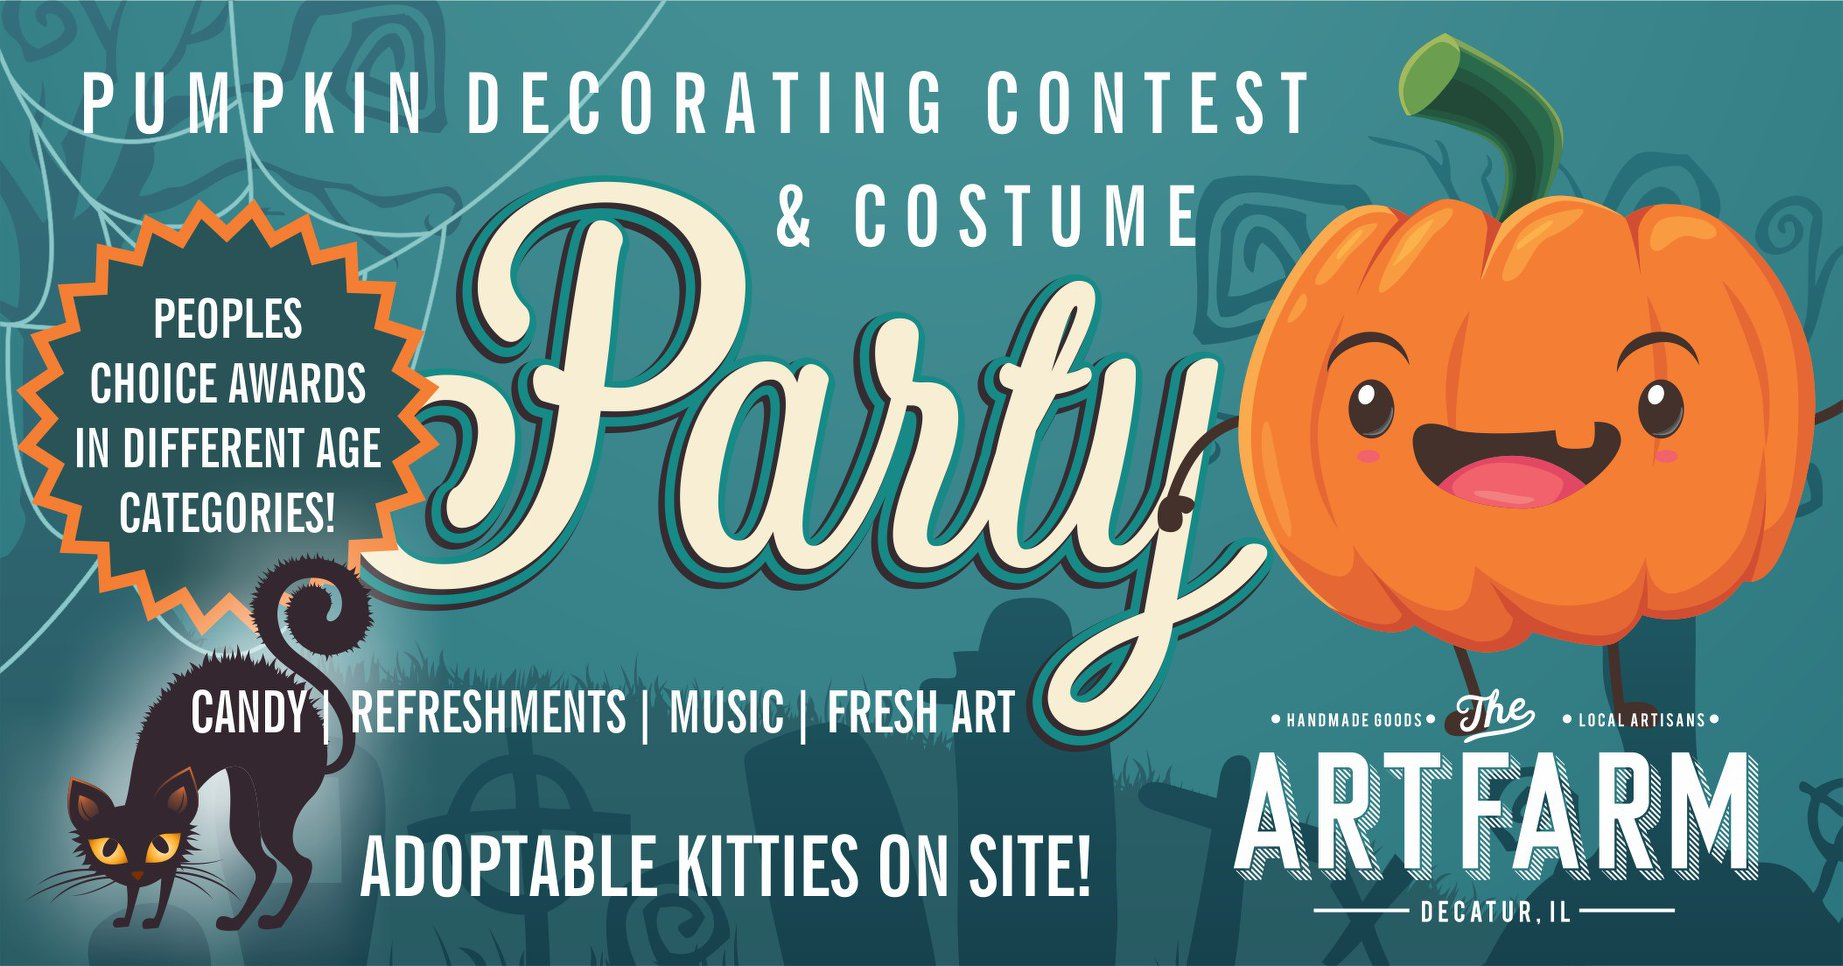 Friday, October 26th - 5-7:30 pm:  The ArtFarm Decatur  has planned a costume party & pumpkin decorating contest to benefit Yoga4Cats. Make plans to join in the fun, we'll bring the kitties!   Visit the Art Farm in downtown Decatur to vote for your favorite pumpkin. Costumes encouraged, refreshments, music, fresh art & adoptable kitties on site!